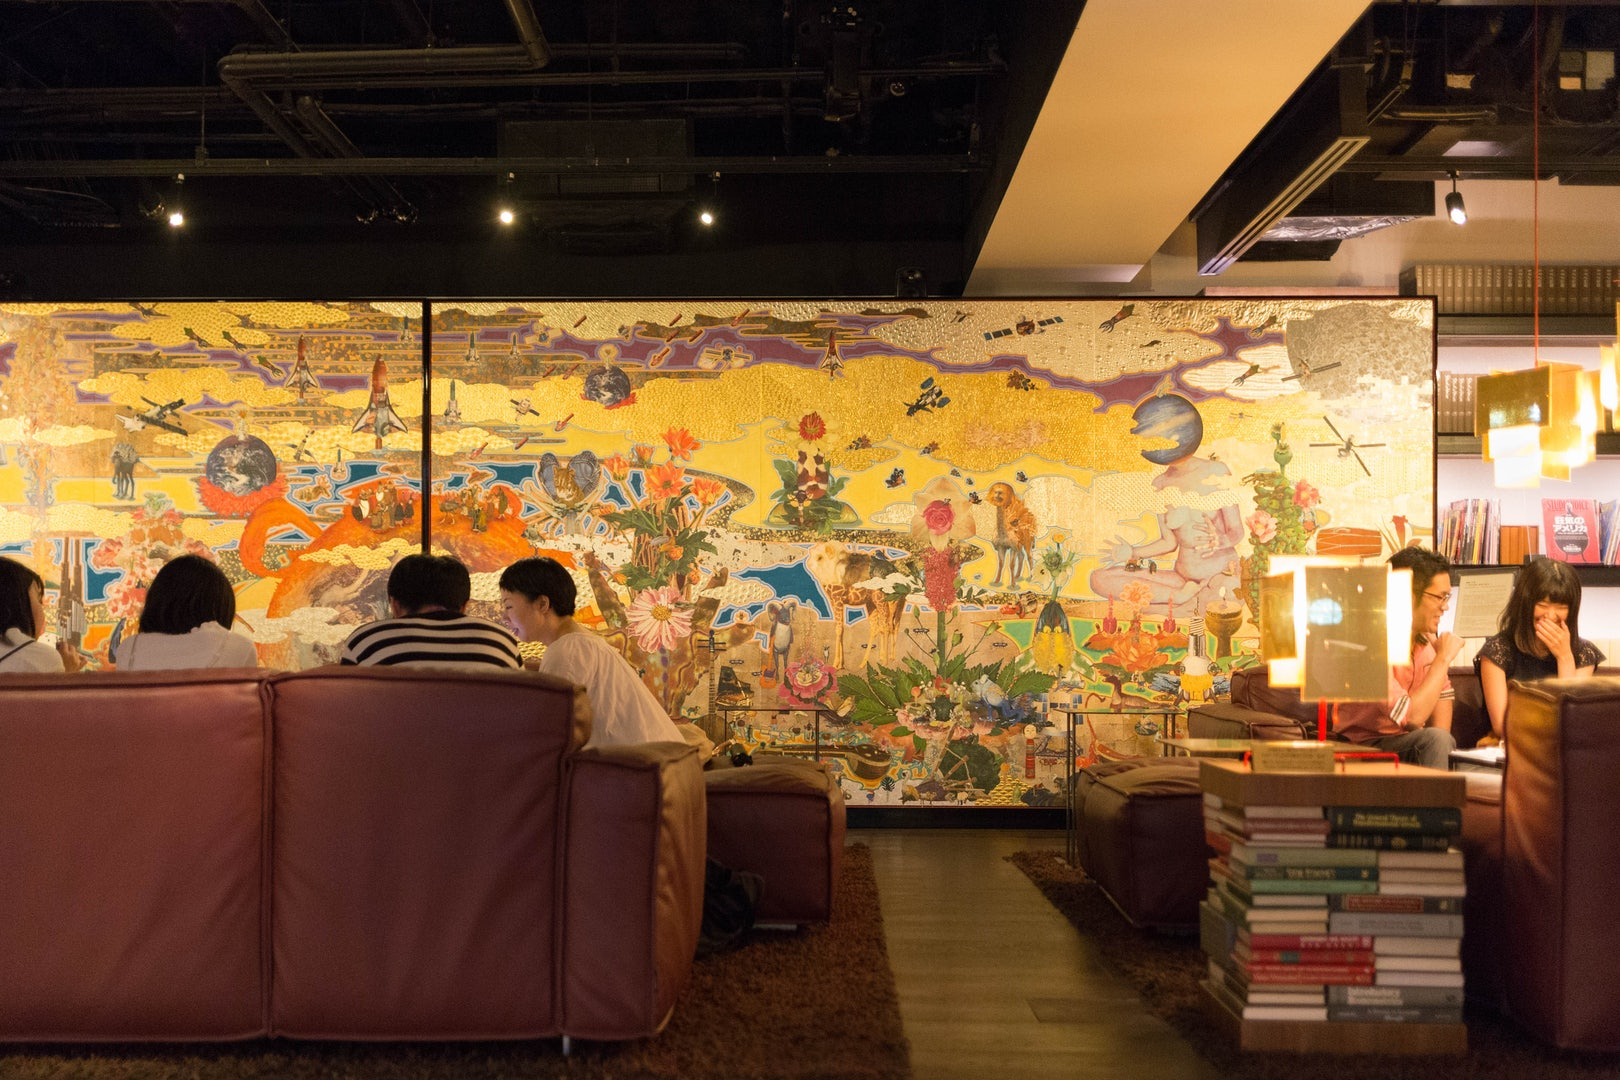 mural art at  Tsutaya Daikanyama book store